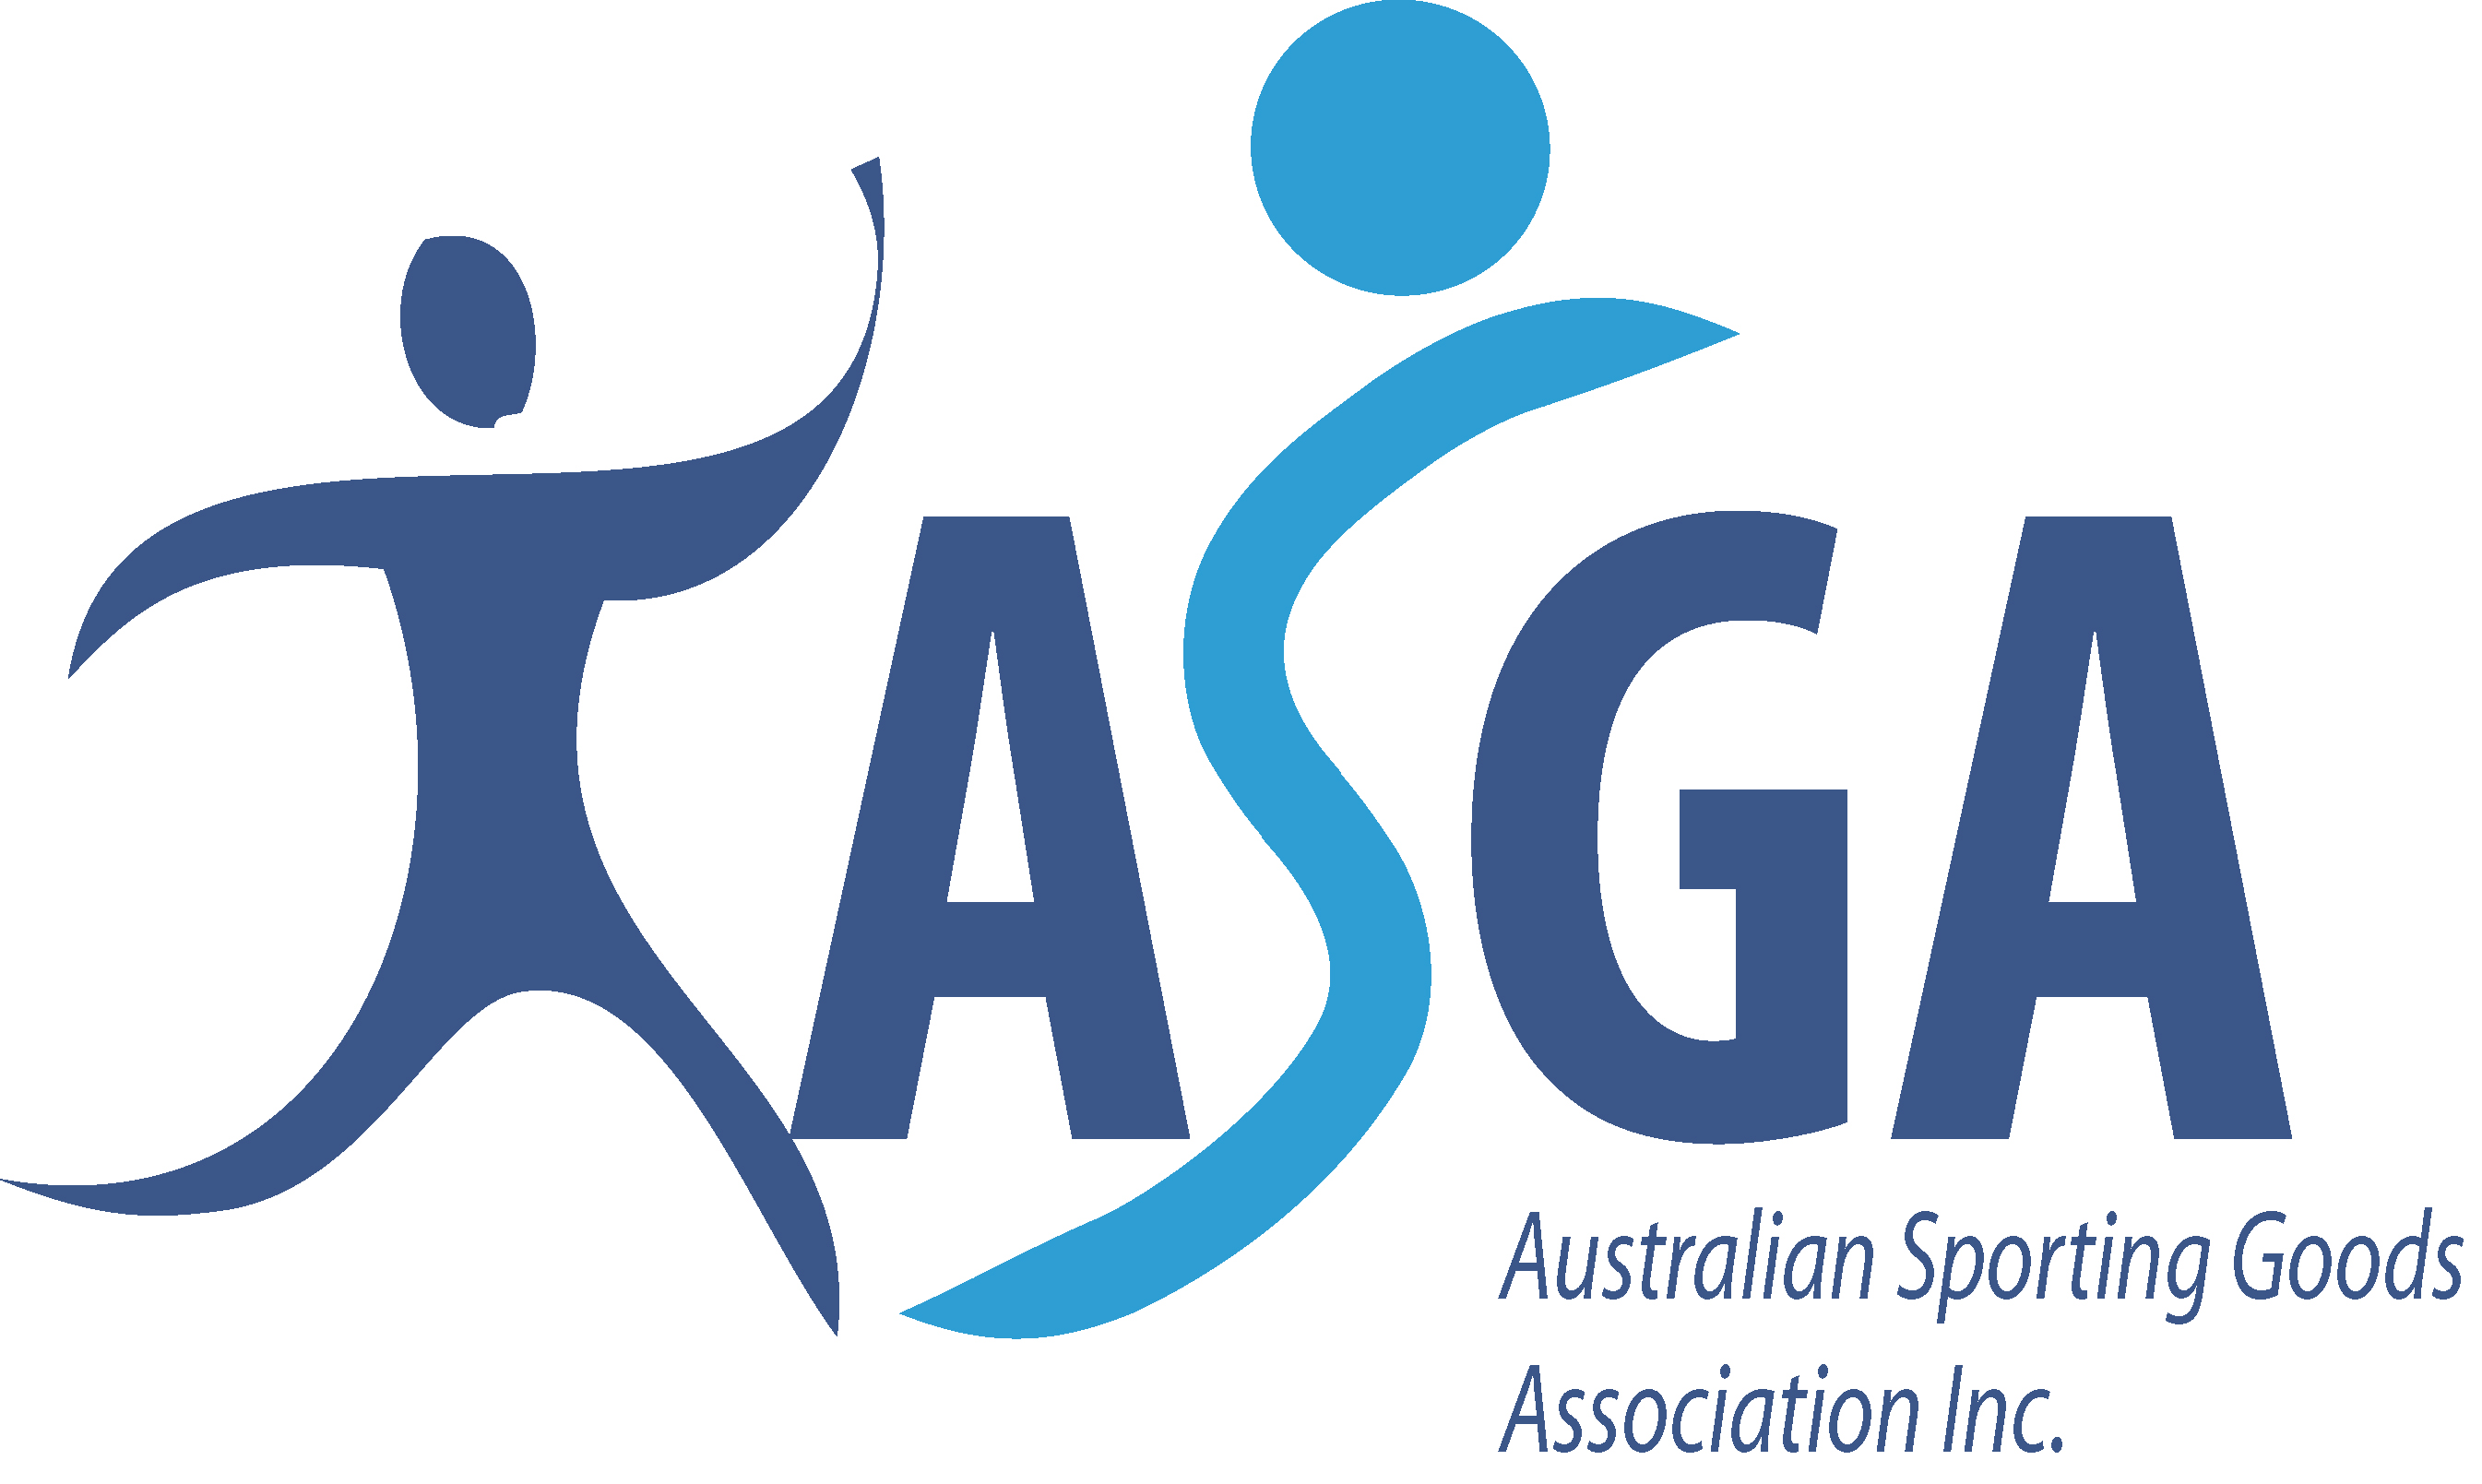 Australian Sporting Goods Association (ASGA)